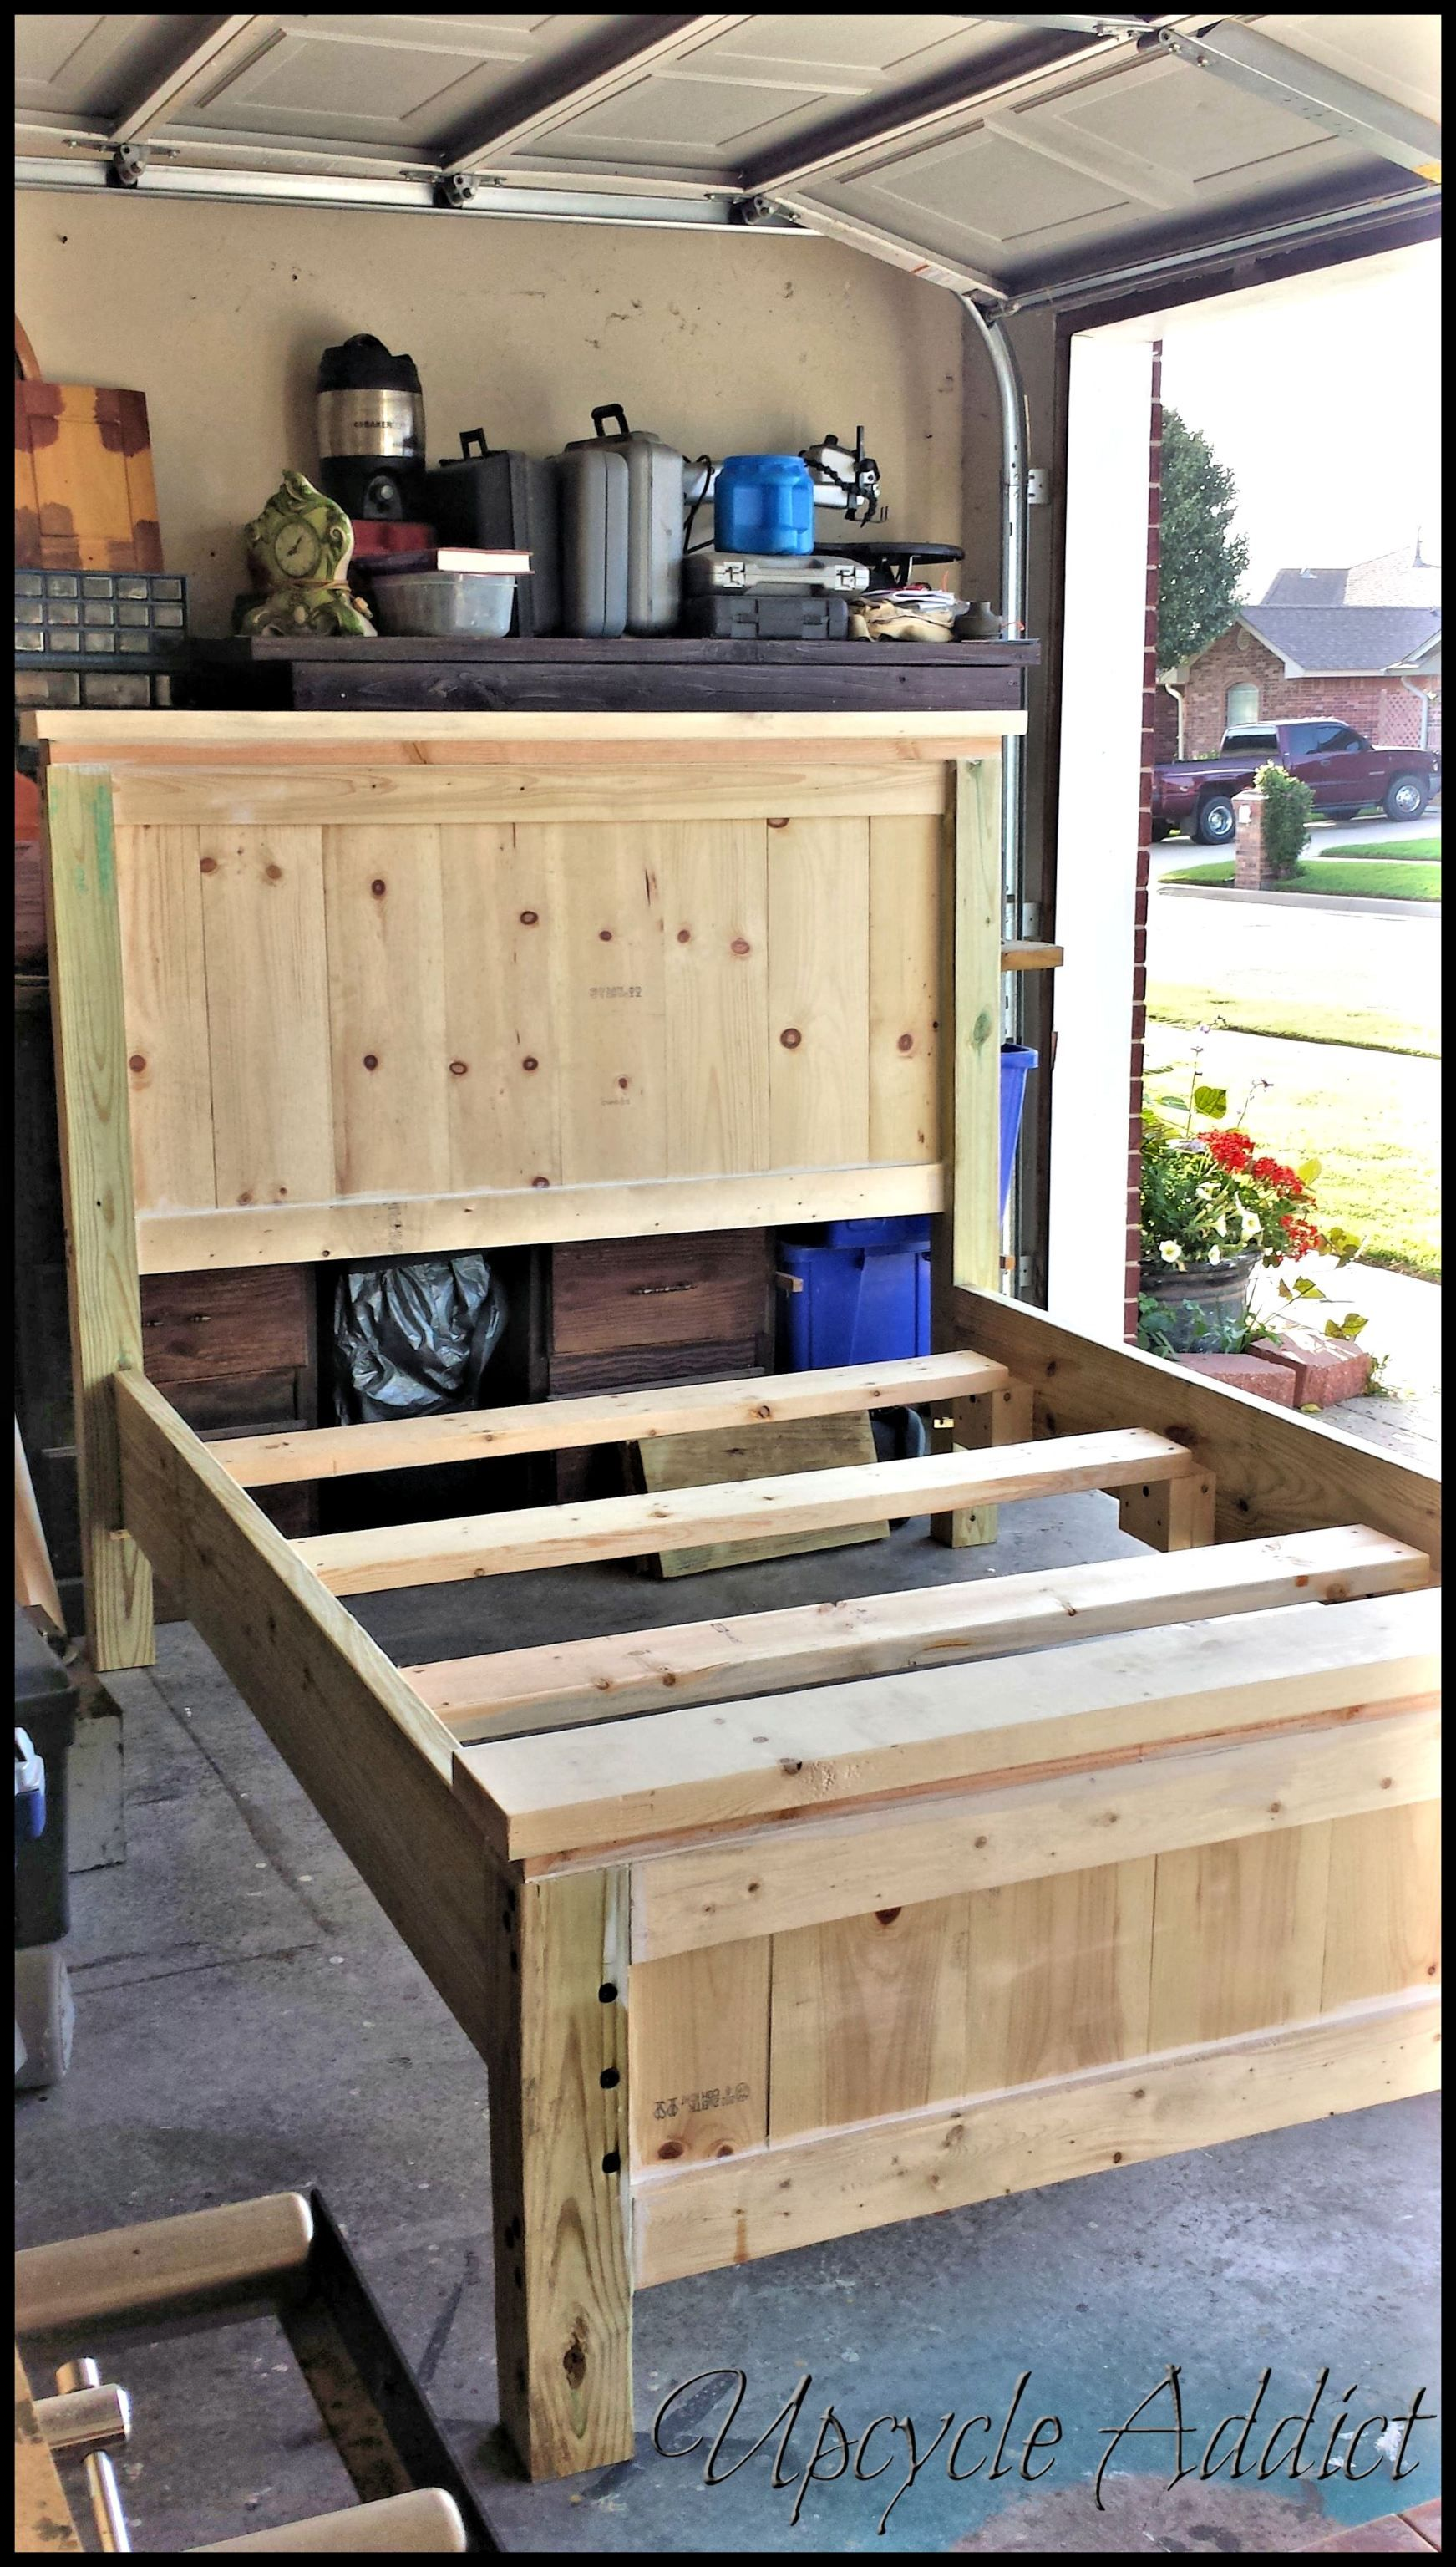 Farmhouse Bed (Full Size) Diy bed frame, Home, Diy furniture